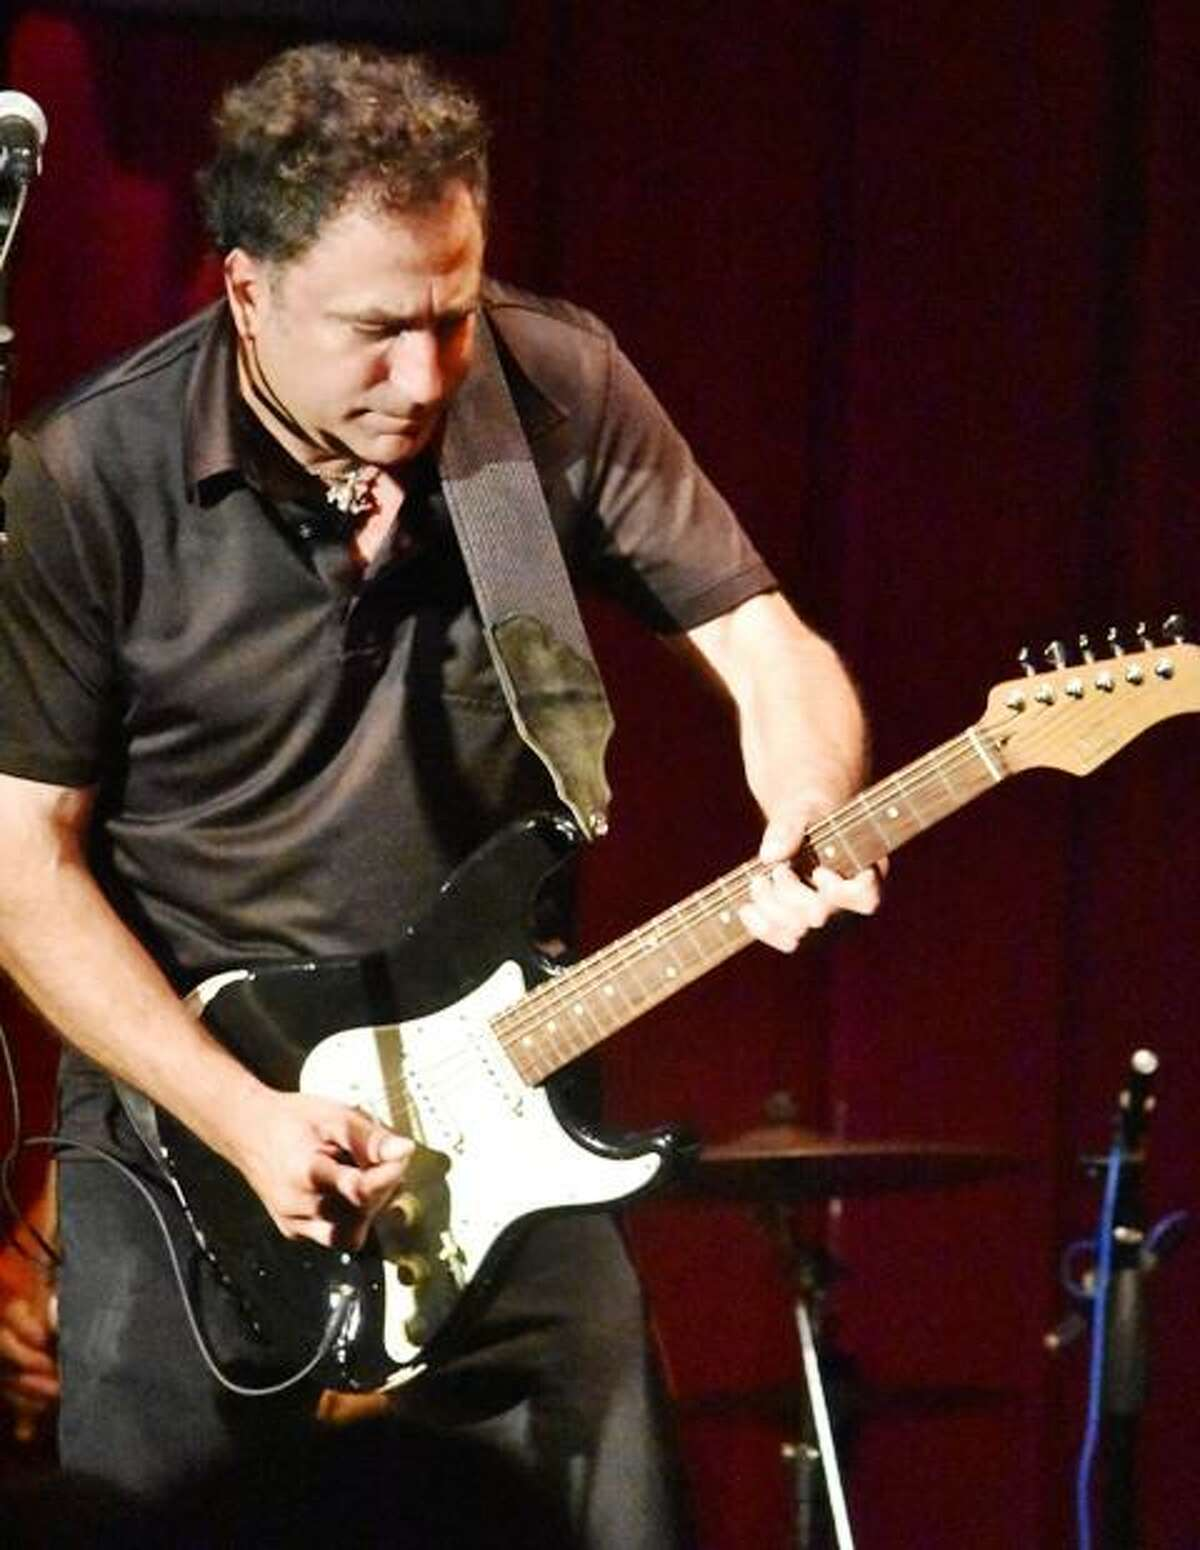 Sunday, Jeff Pitchell and Tyrone Vaughan honor guitar legend Stevie Ray Vaughan.